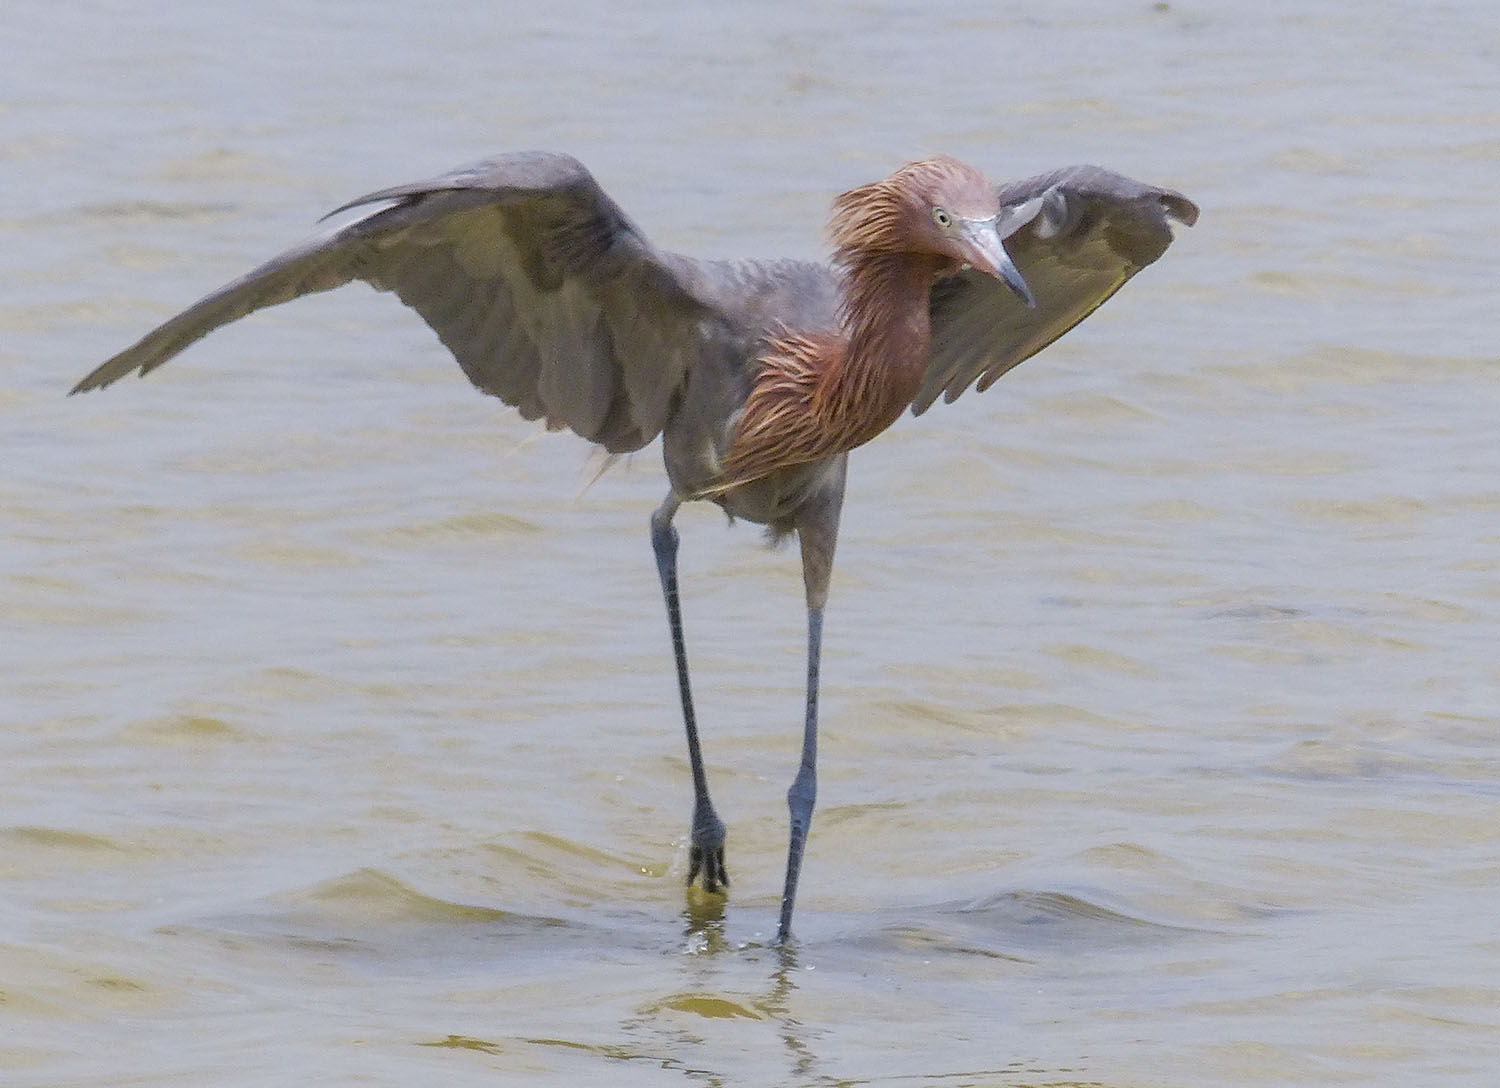 Reddish Egret 'shadowing' to reduce glare. Or just changing directions.